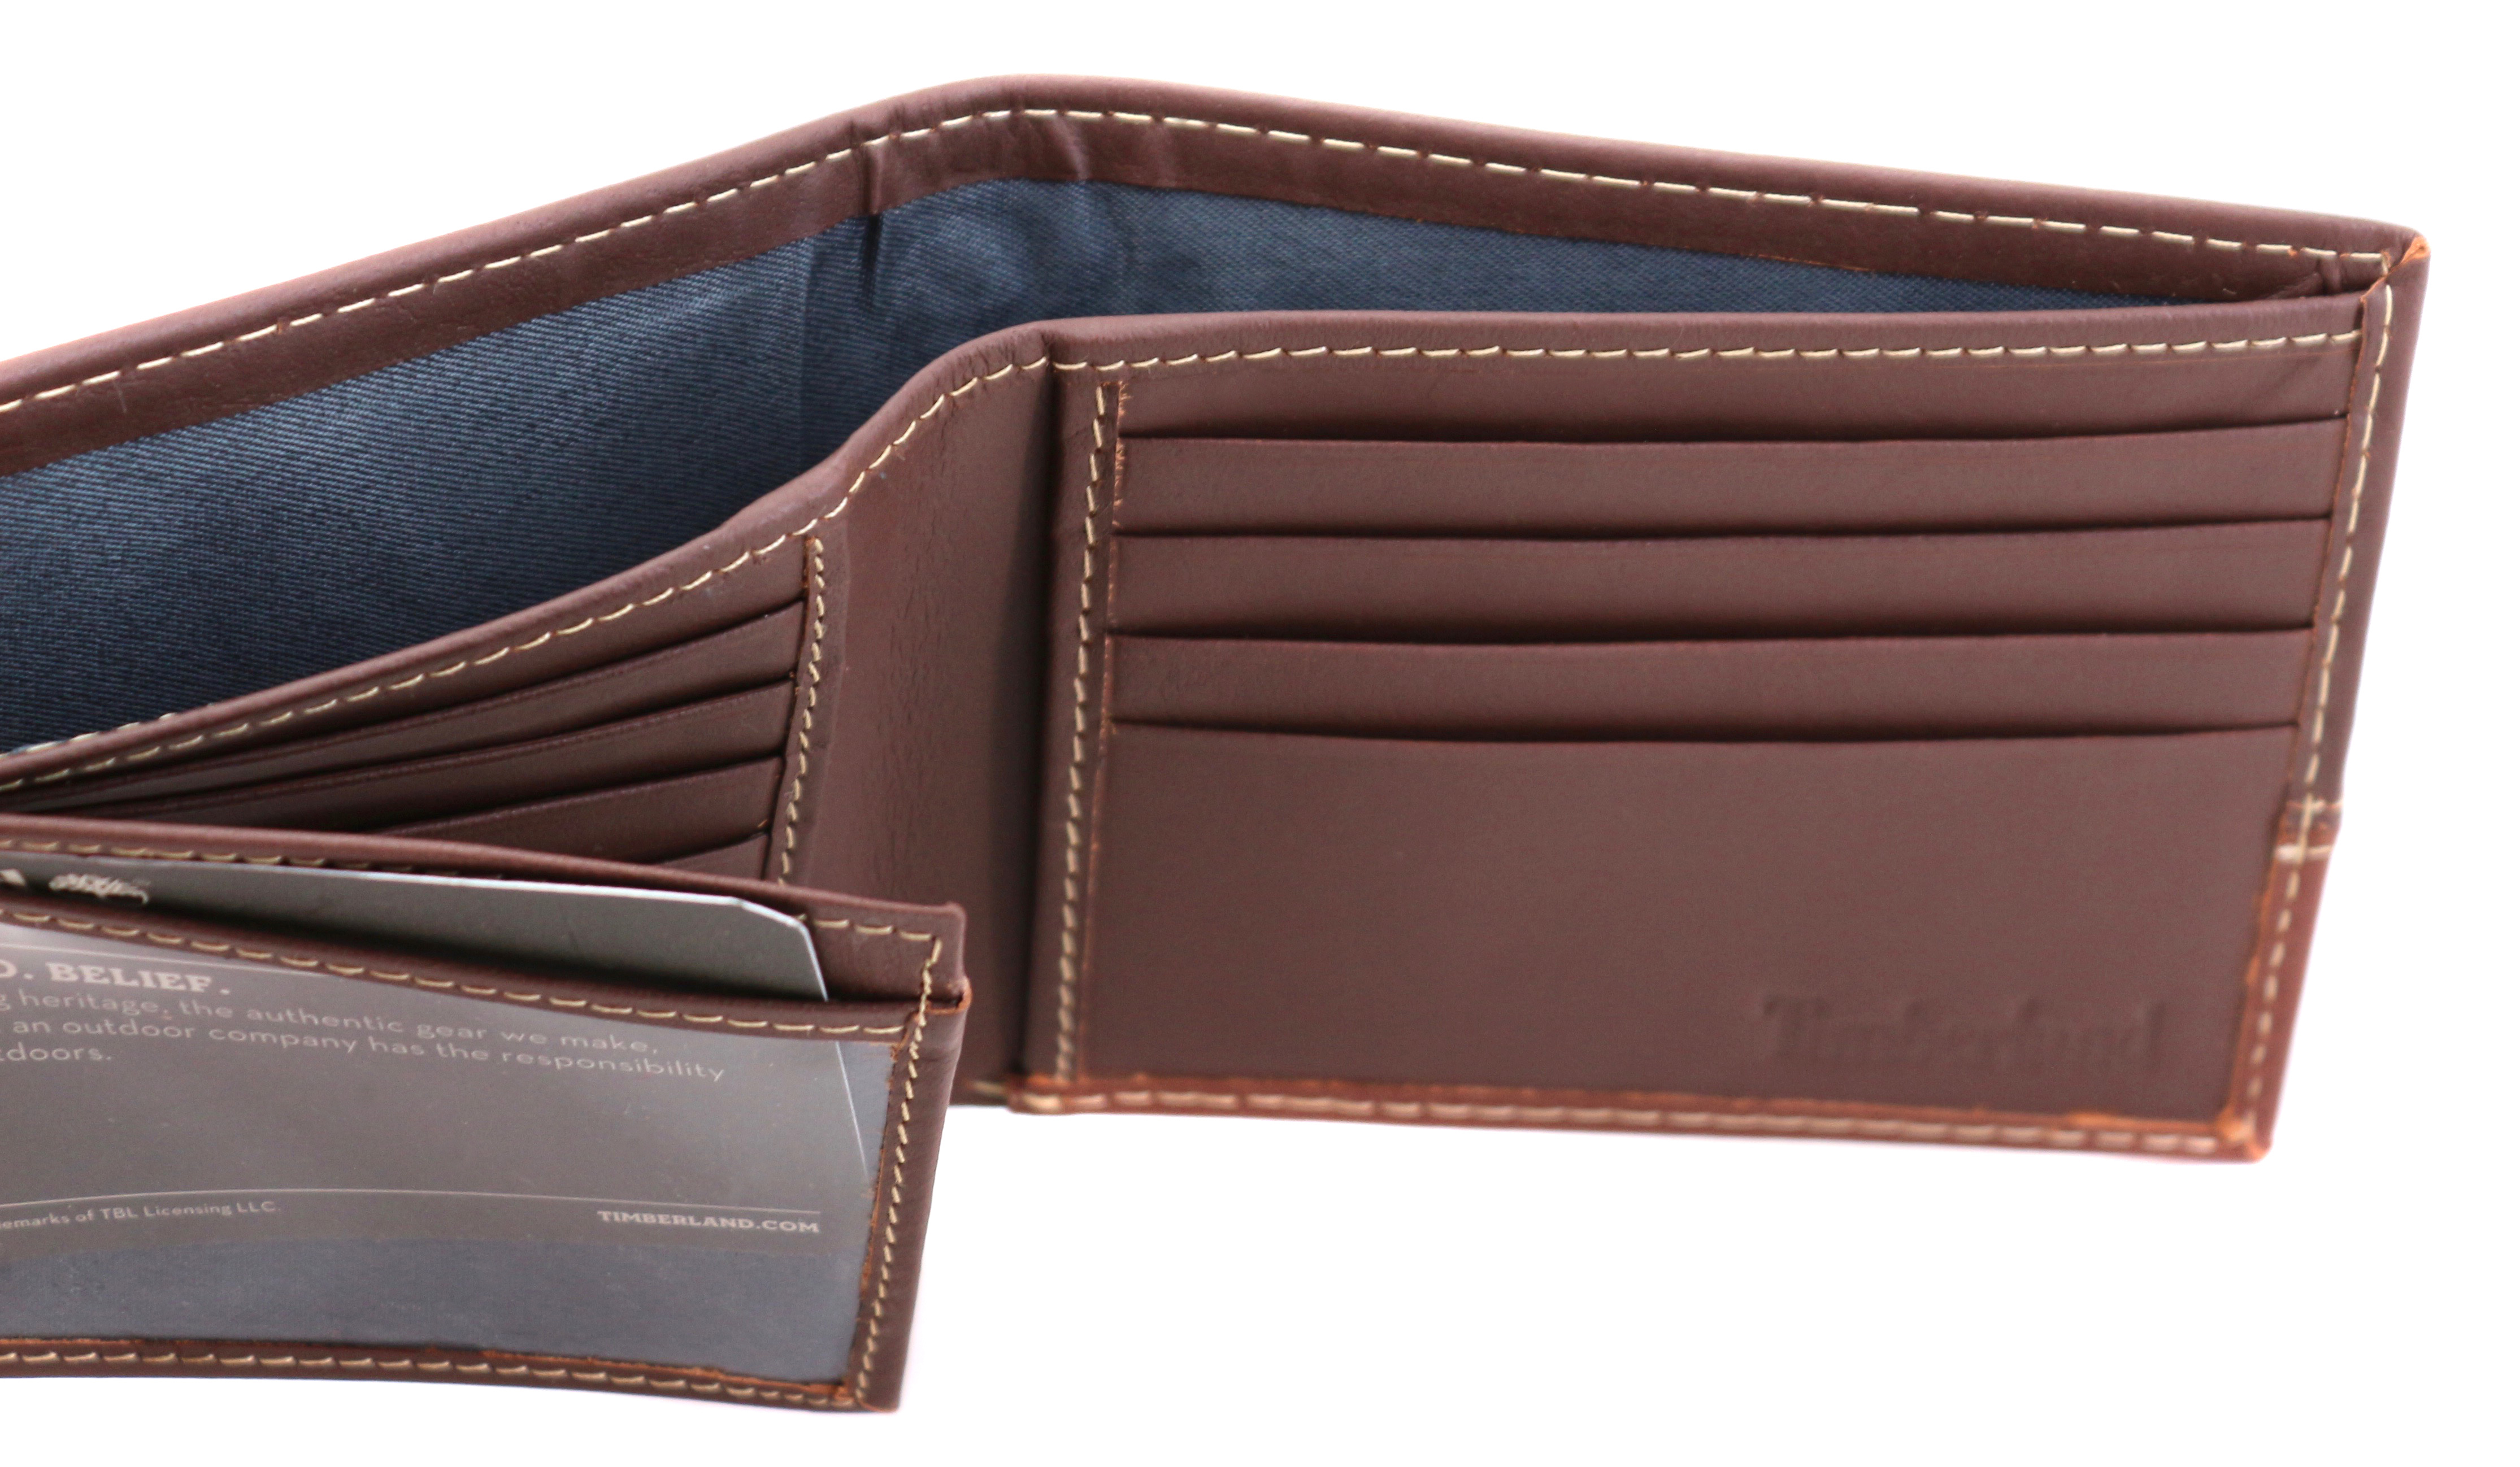 Timberland-Men-039-s-Genuine-Two-Tone-Leather-Credit-Card-Billfold-Commuter-Wallet thumbnail 24